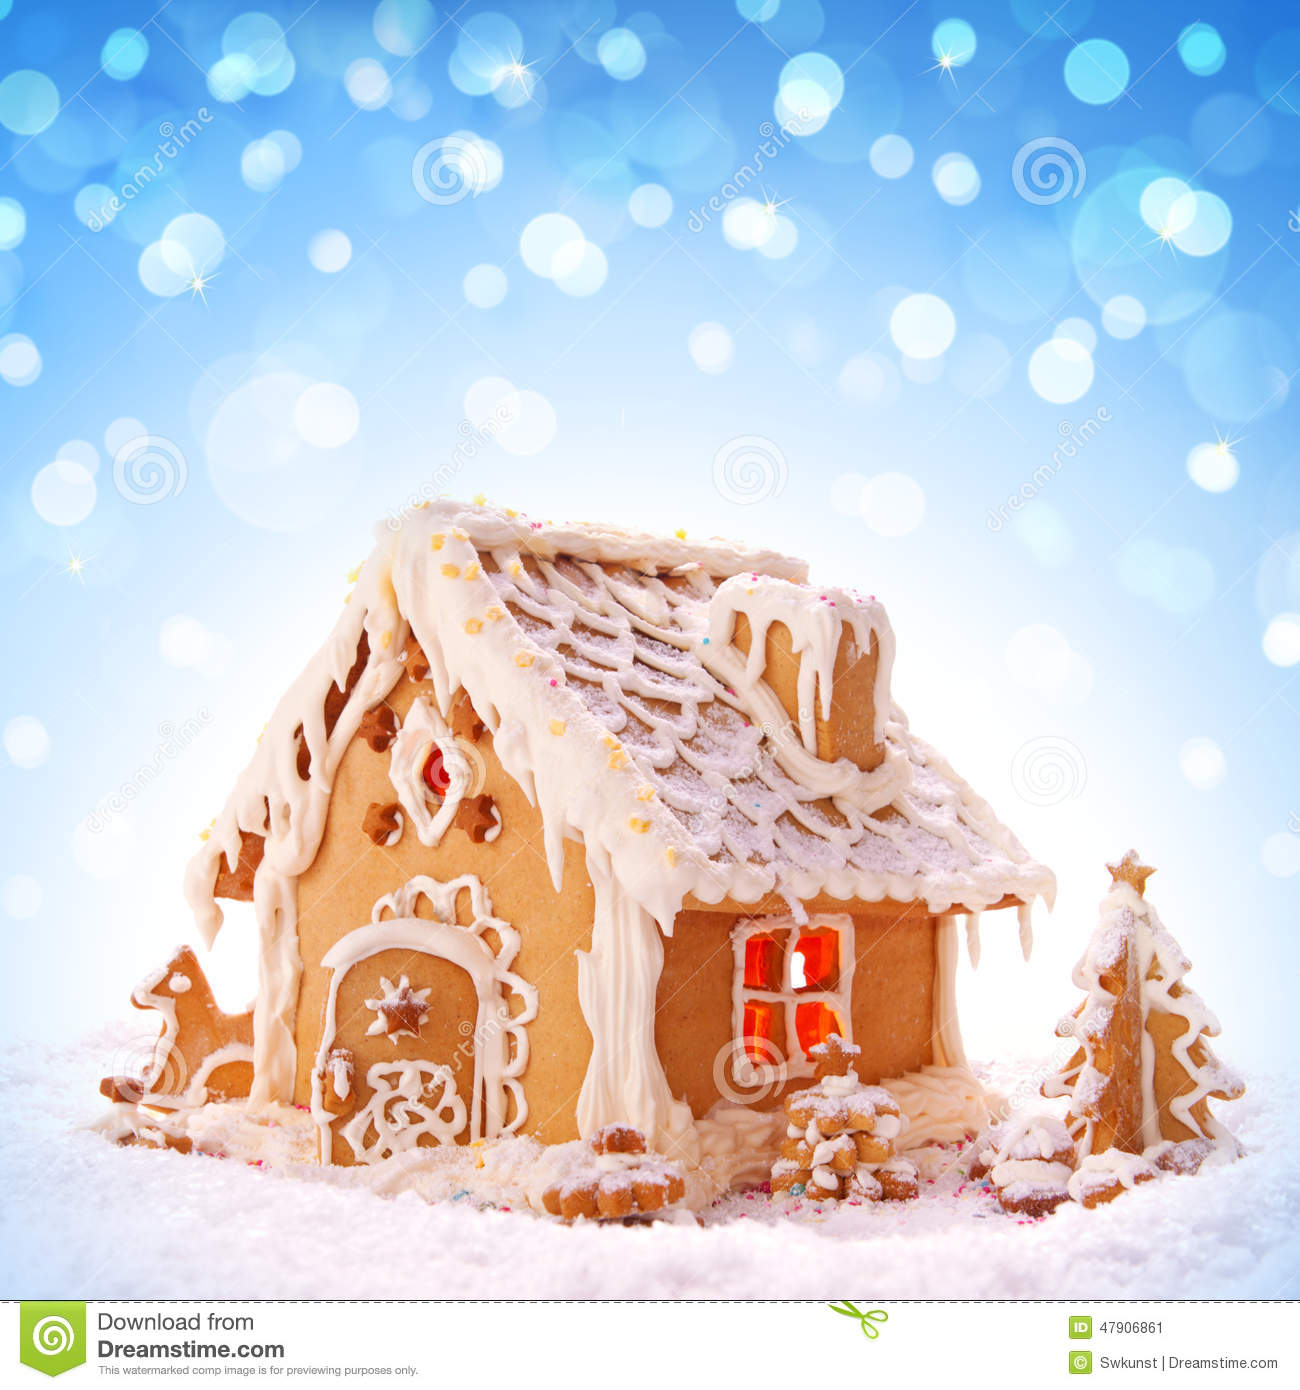 Christmas Gingerbread House Background.Christmas Card Holiday Gingerbread House Stock Image